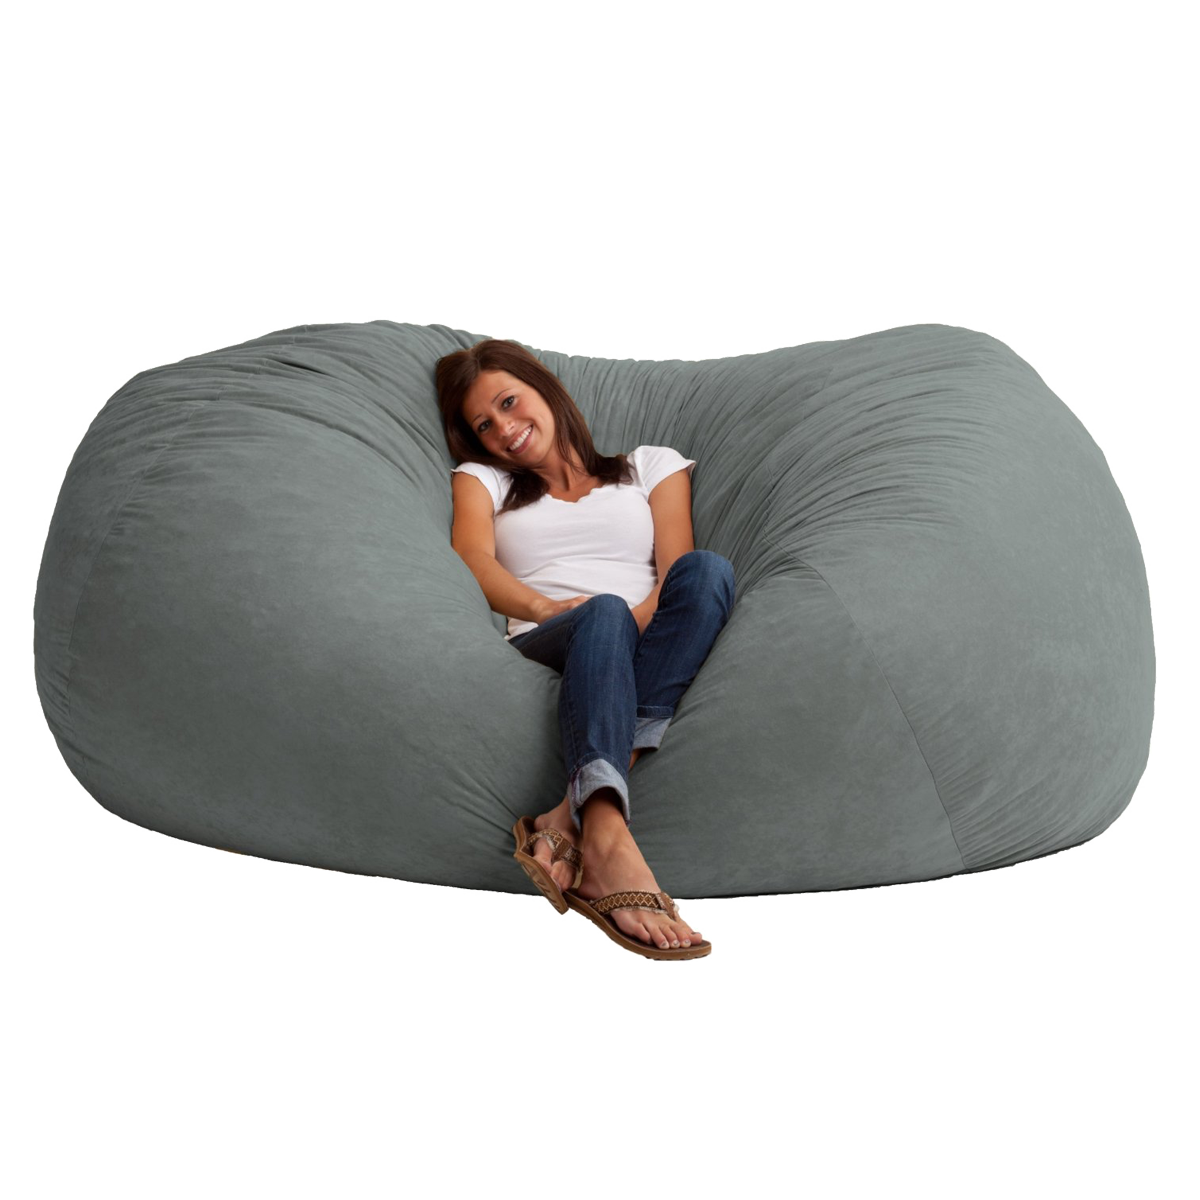 what size bean bag chair do i need plastic pool chairs big ass beanbag 7 foot long awesome best of amazon